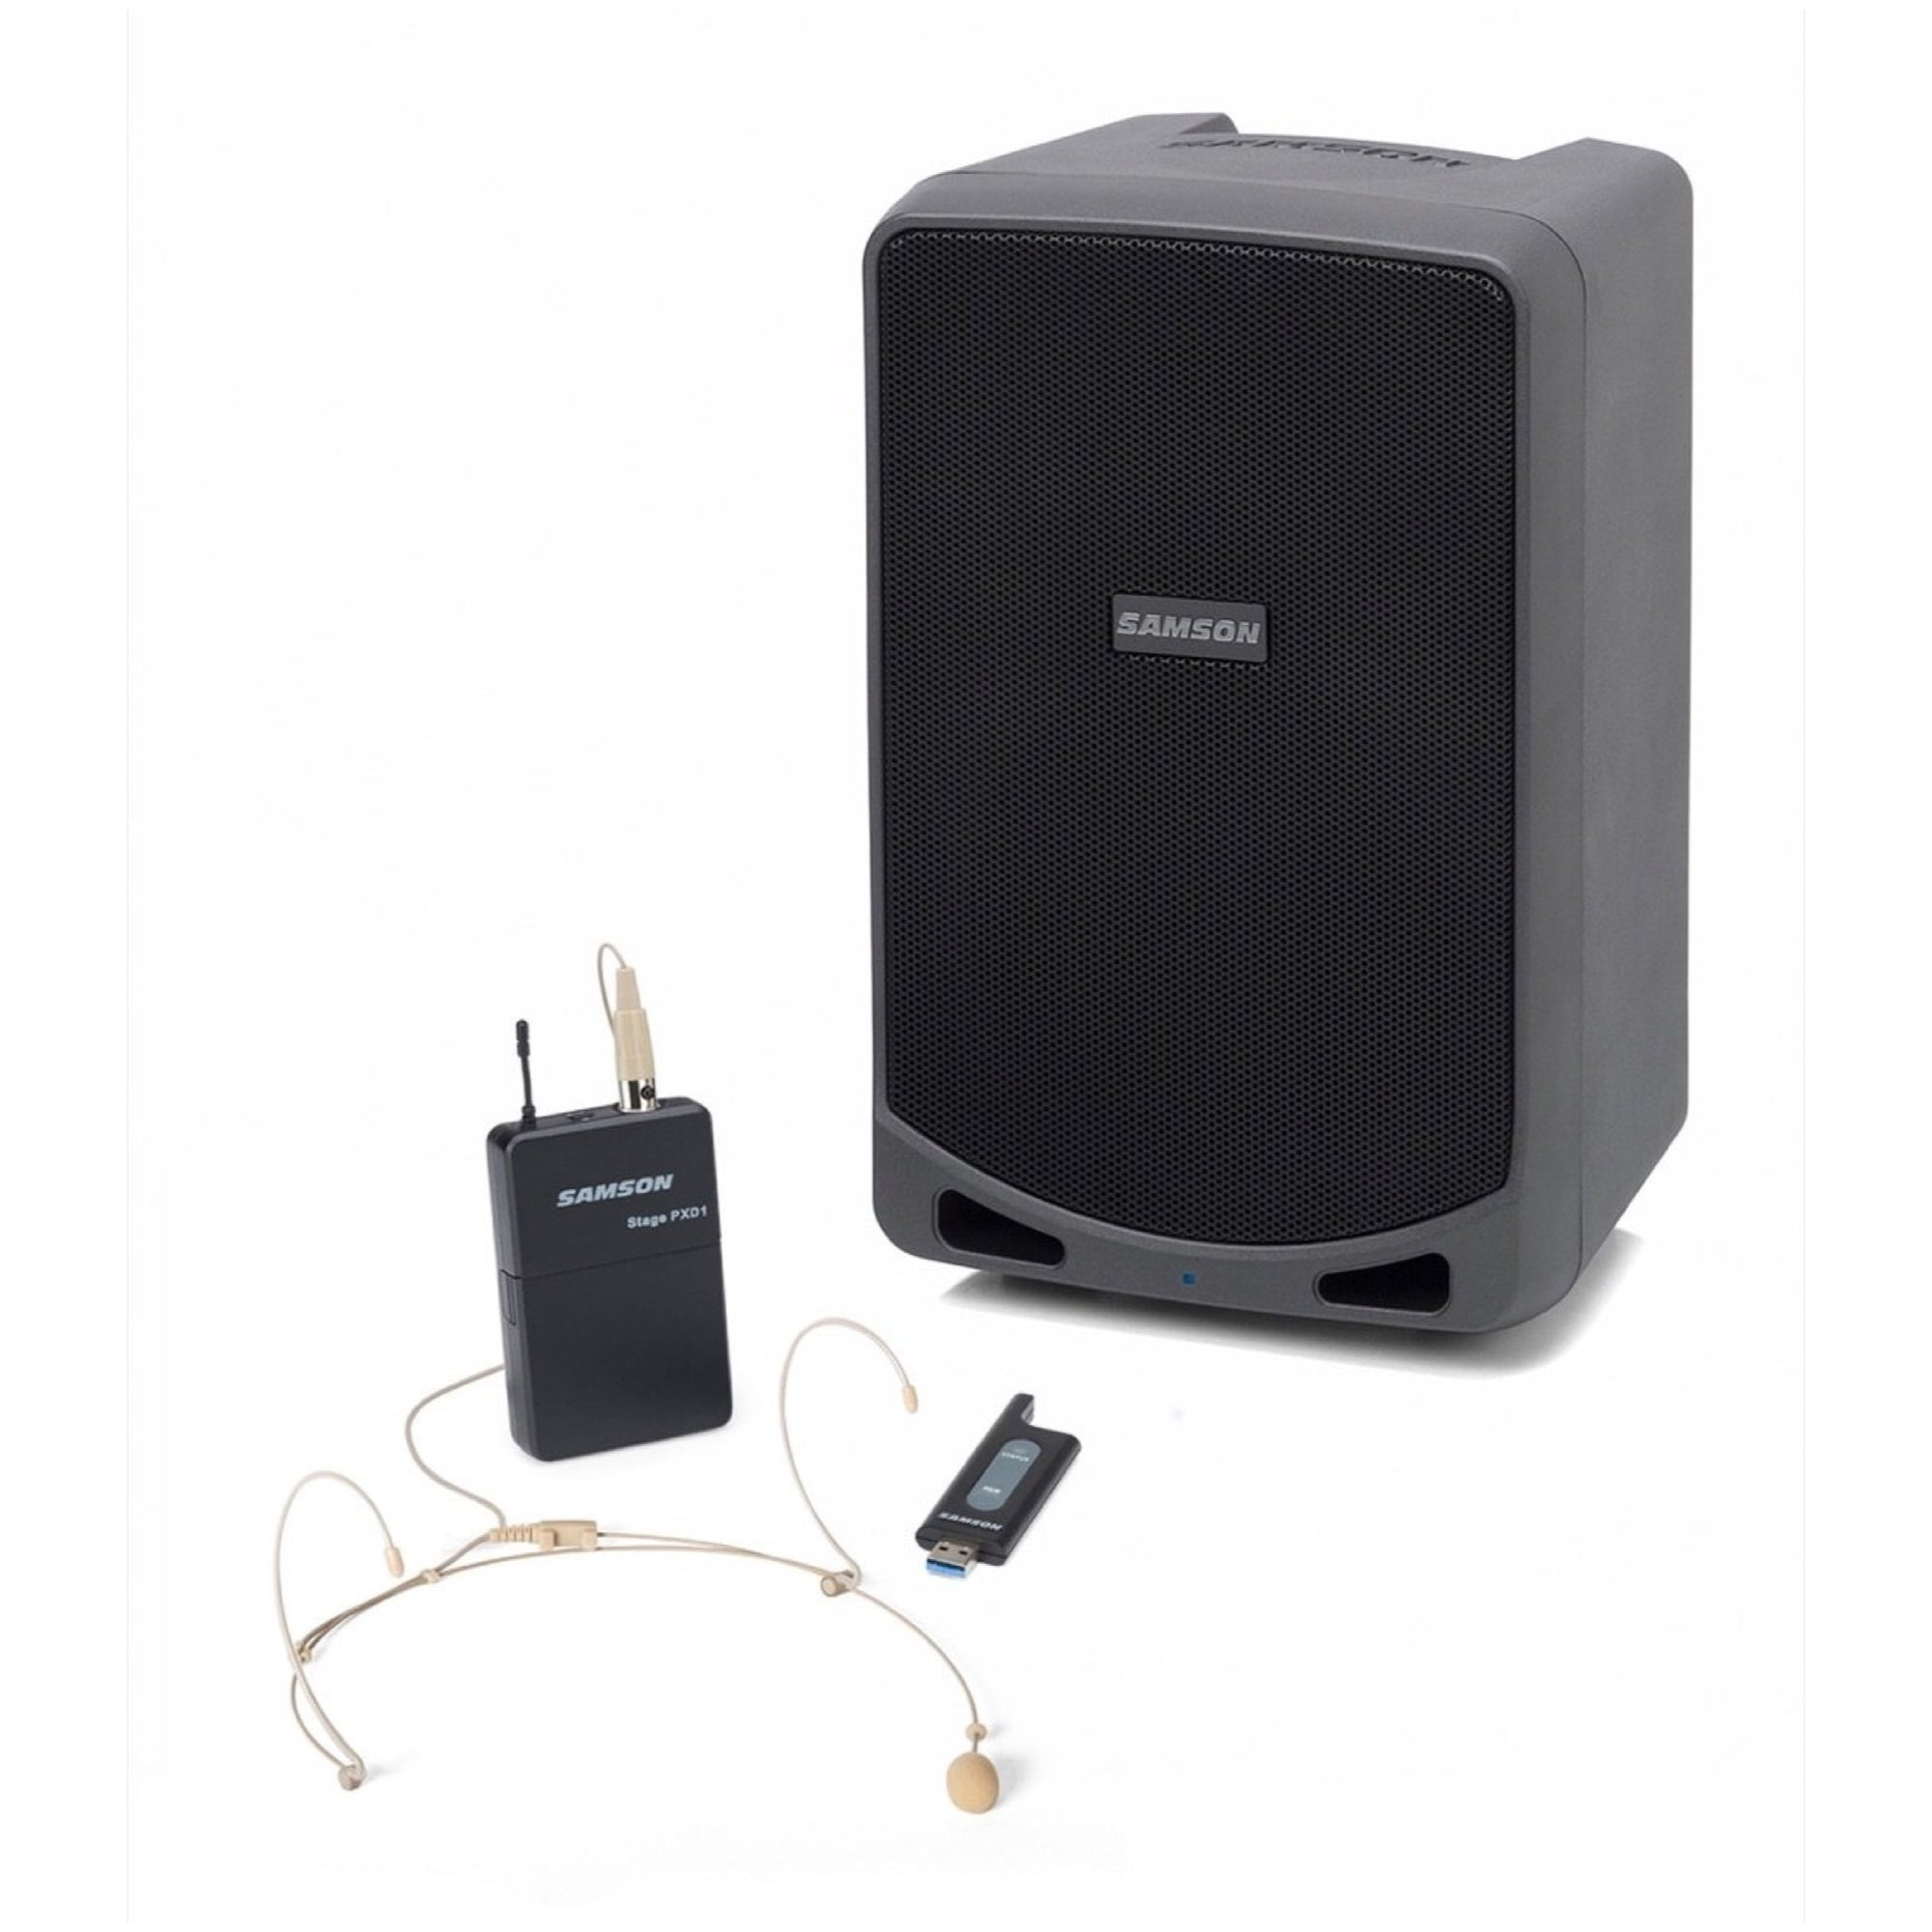 Samson Expedition XP106wde Rechargeable Portable Bluetooth PA System with Wireless Headset Mic